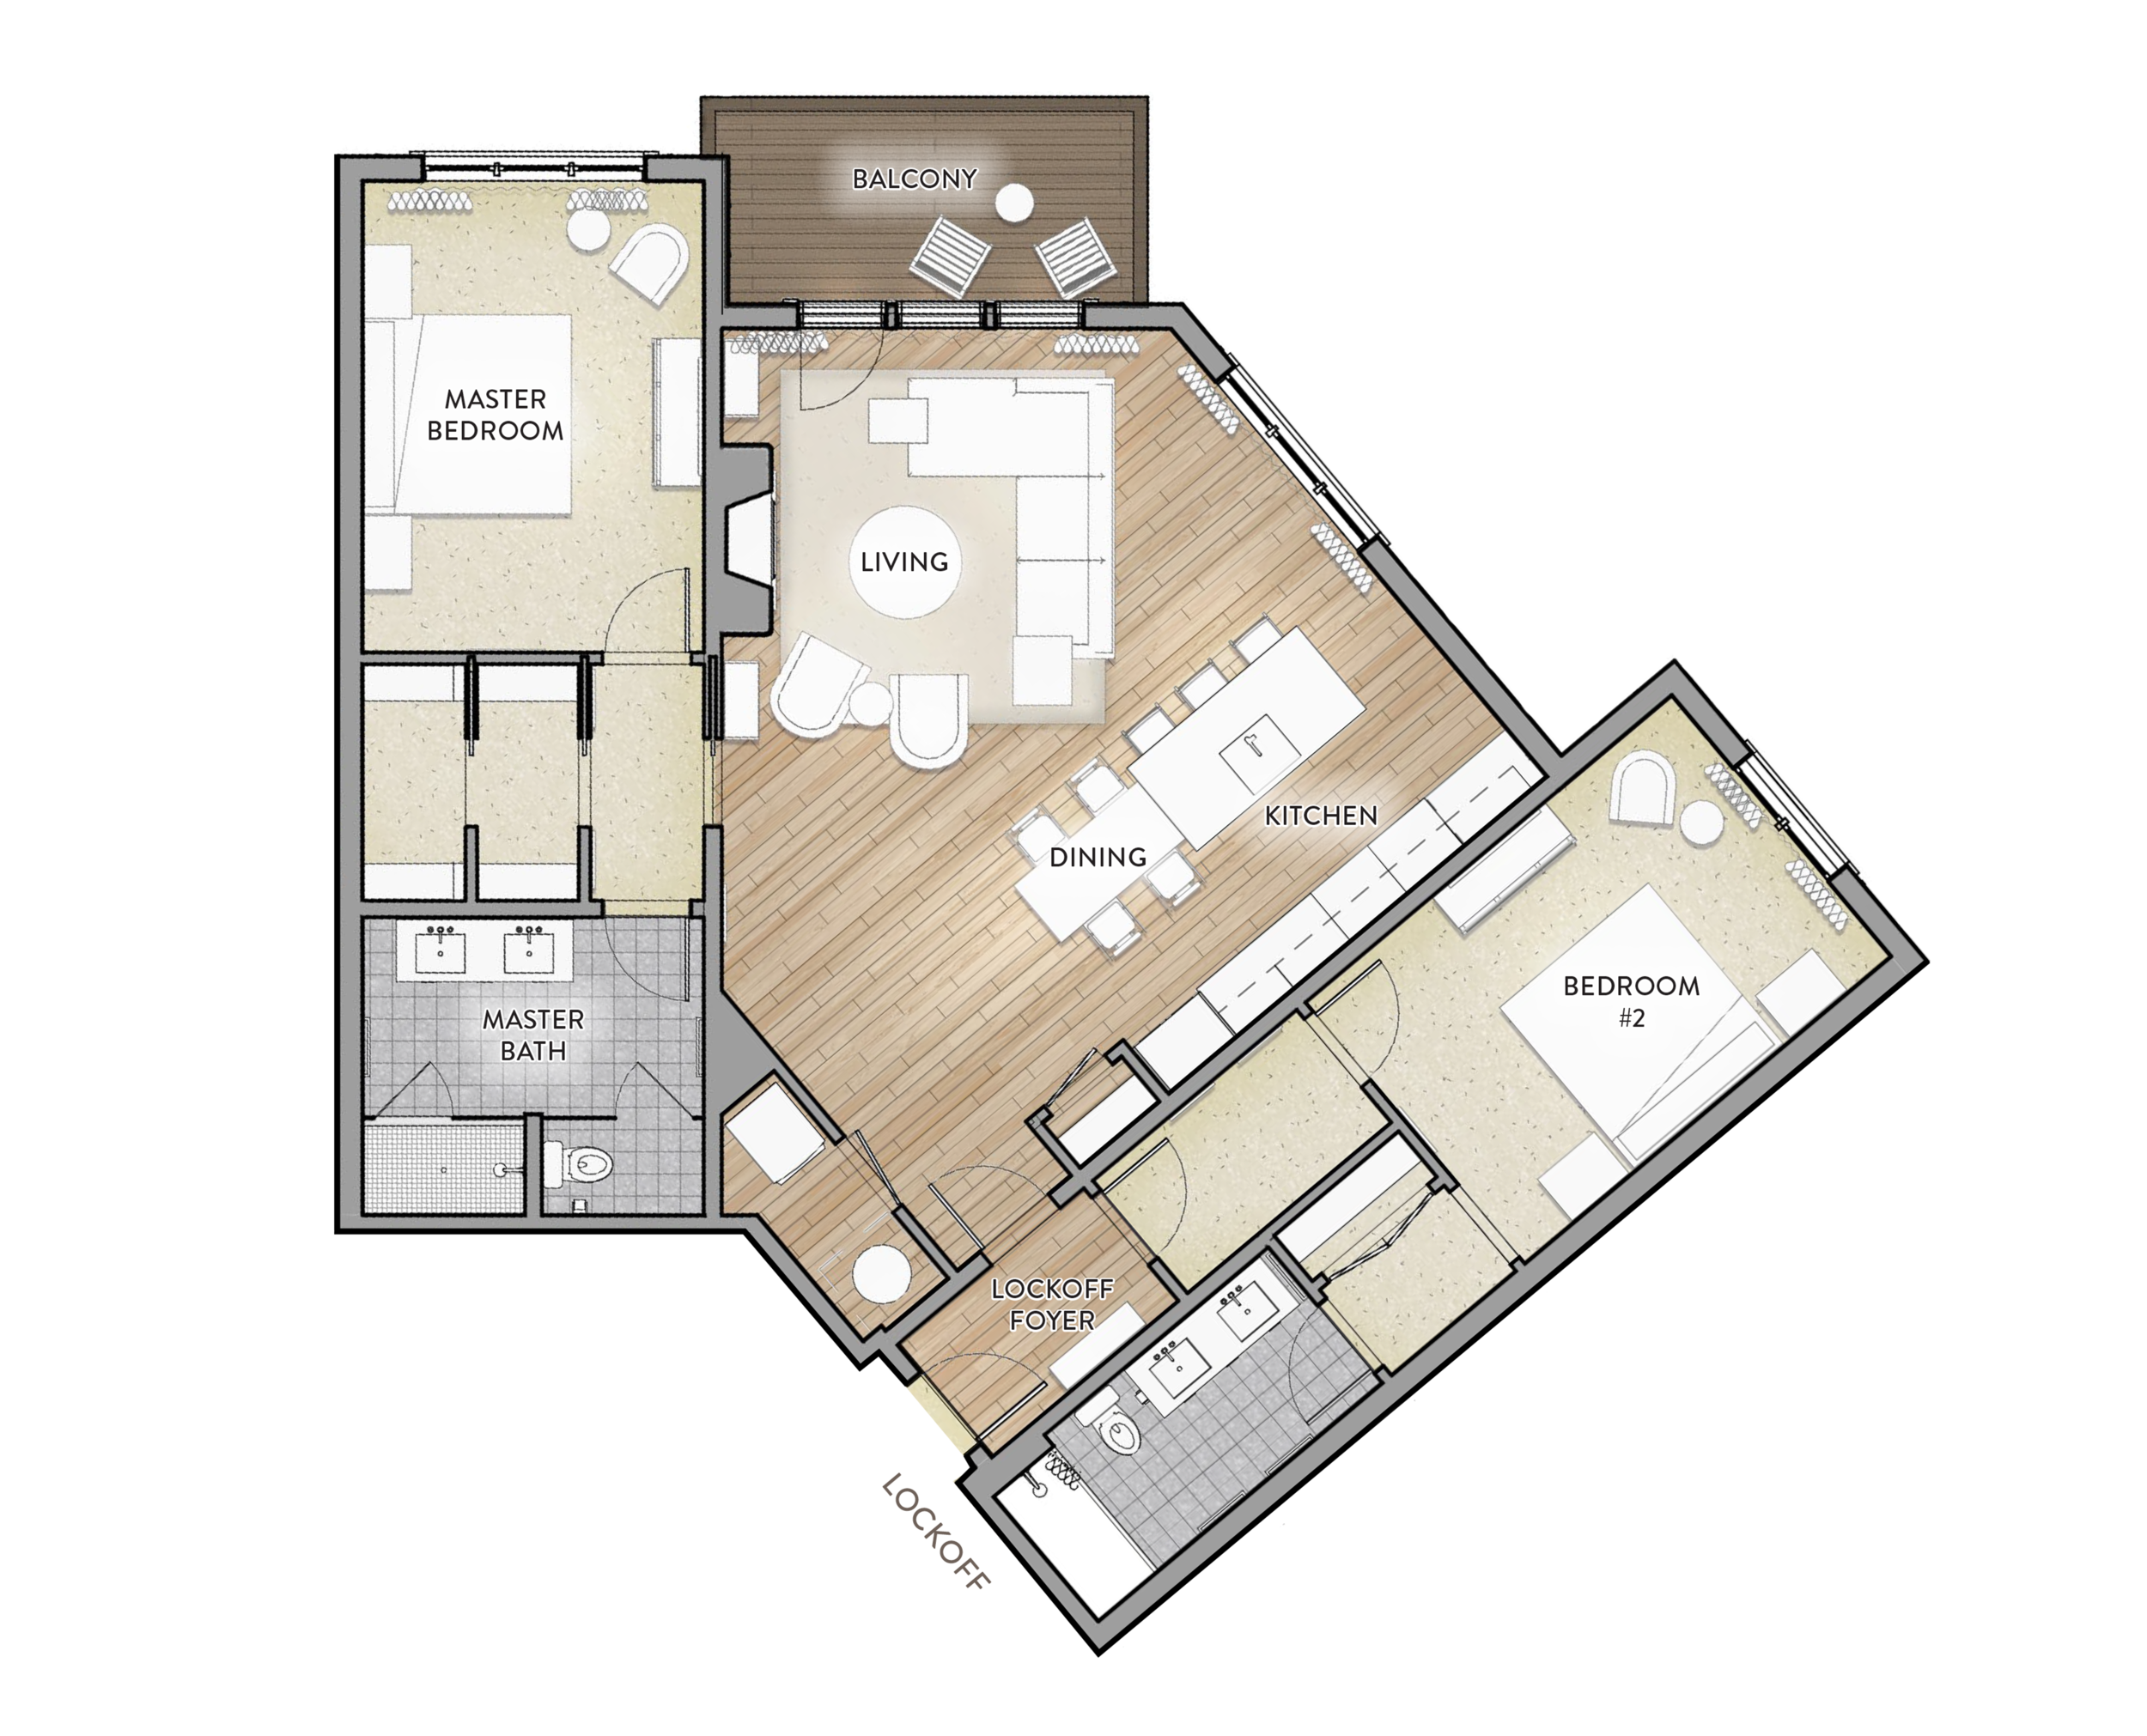 Type C - 2 Bed / 2 BathArea: 1468 SF(Paint to Paint)Residences:137, 237, 337, 4371 BalconyLockOff